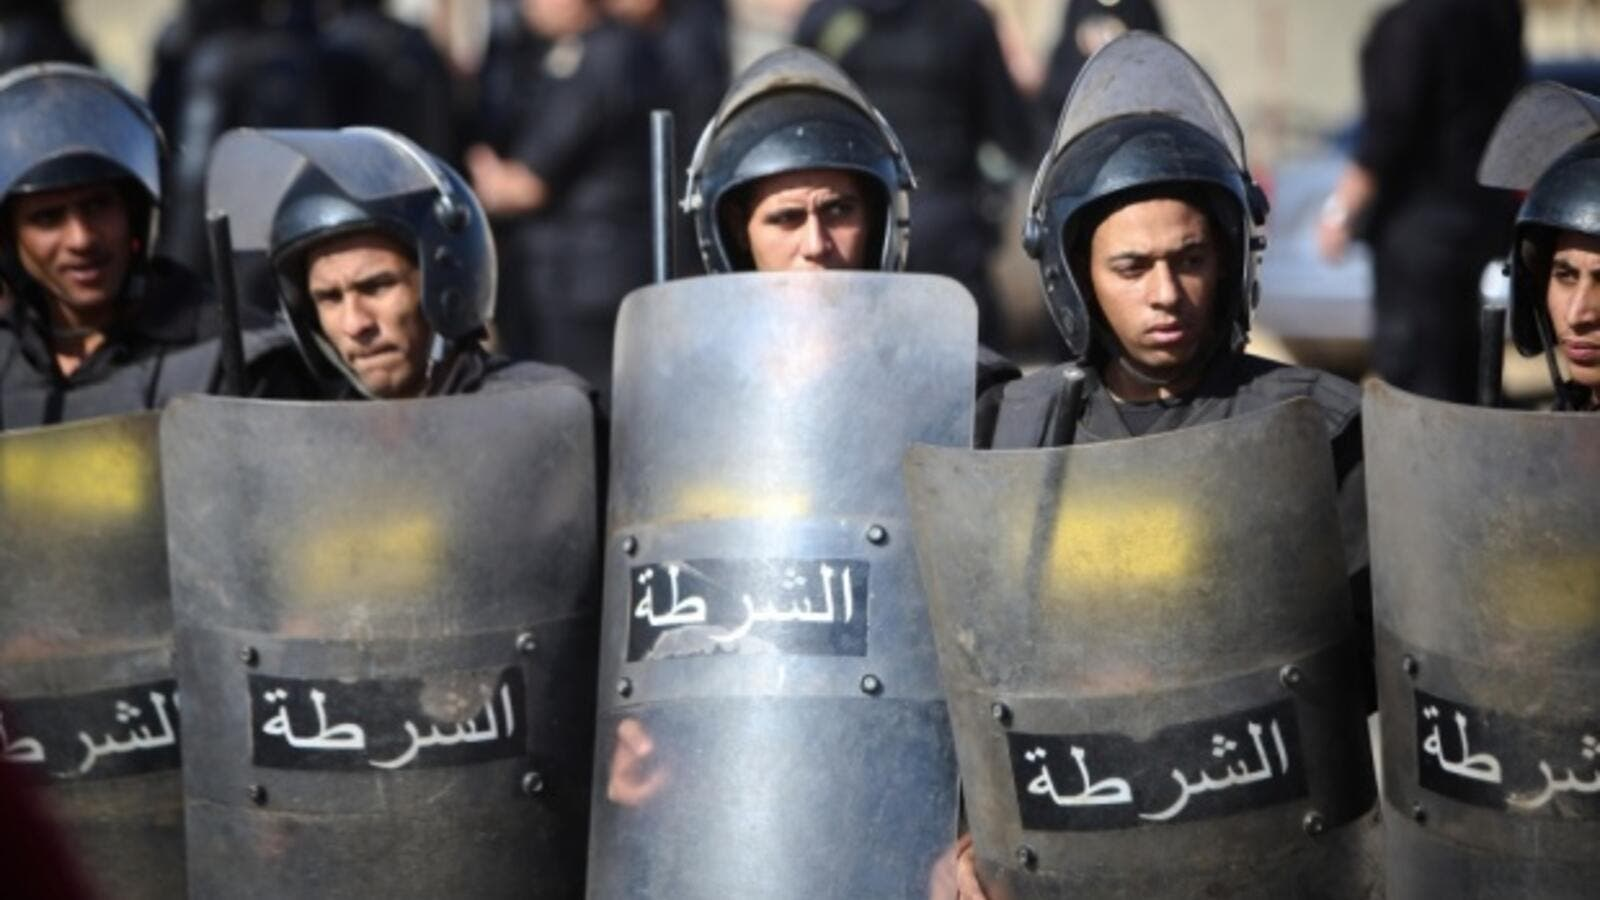 Egypt police stand guard during a rally. (AFP/File)